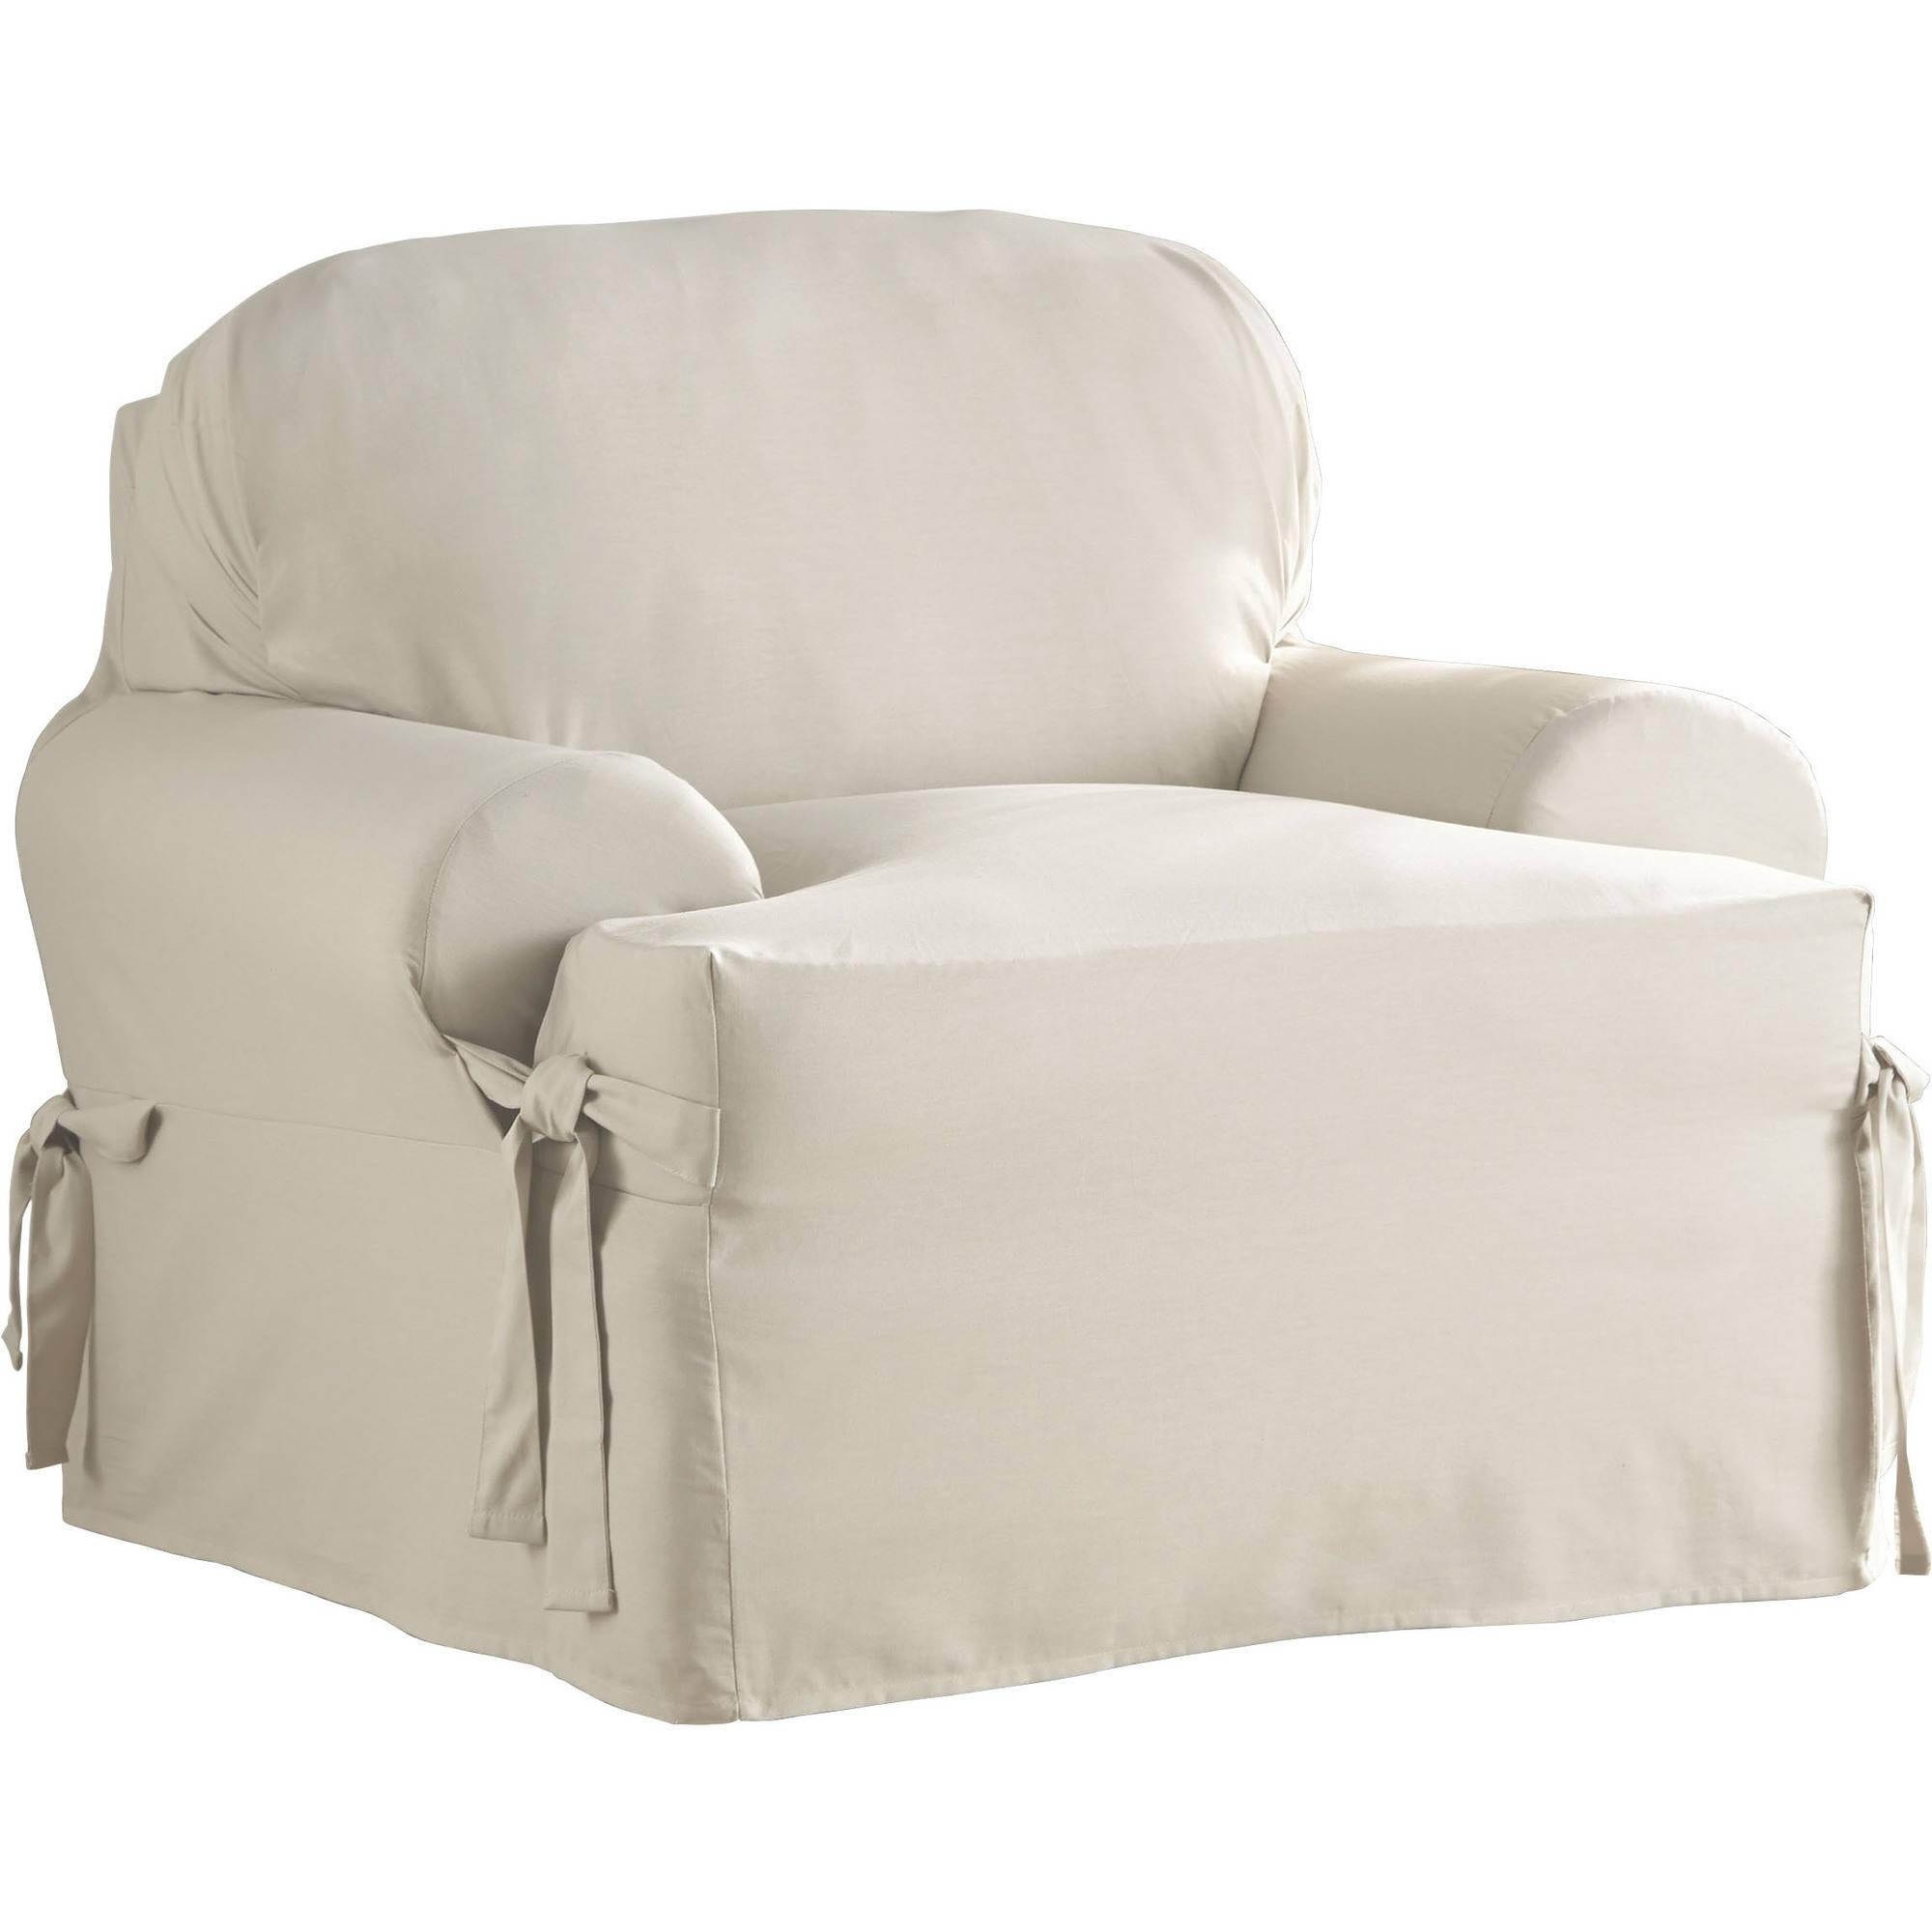 Slipcovers – Walmart Inside Slipcovers For 3 Cushion Sofas (Image 10 of 20)